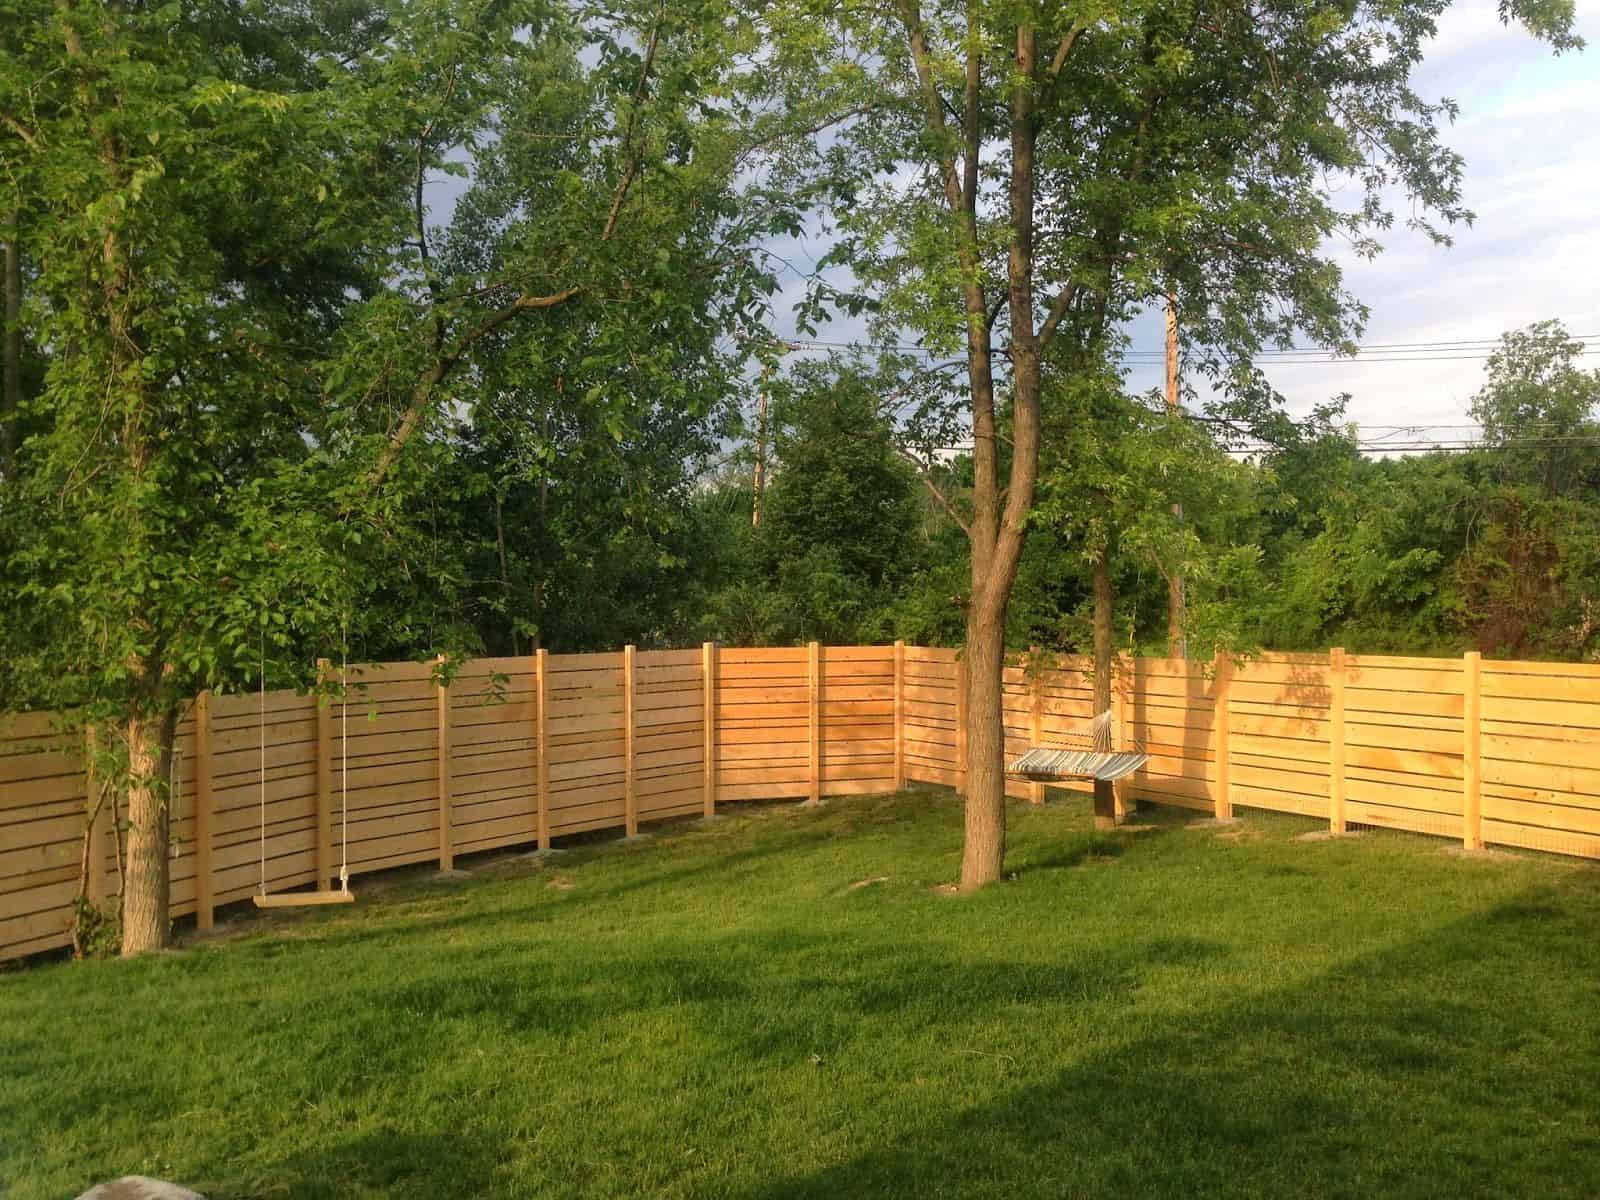 How Much Does It Cost To Fence A Yard The Housing Forum for Backyard Fencing Cost